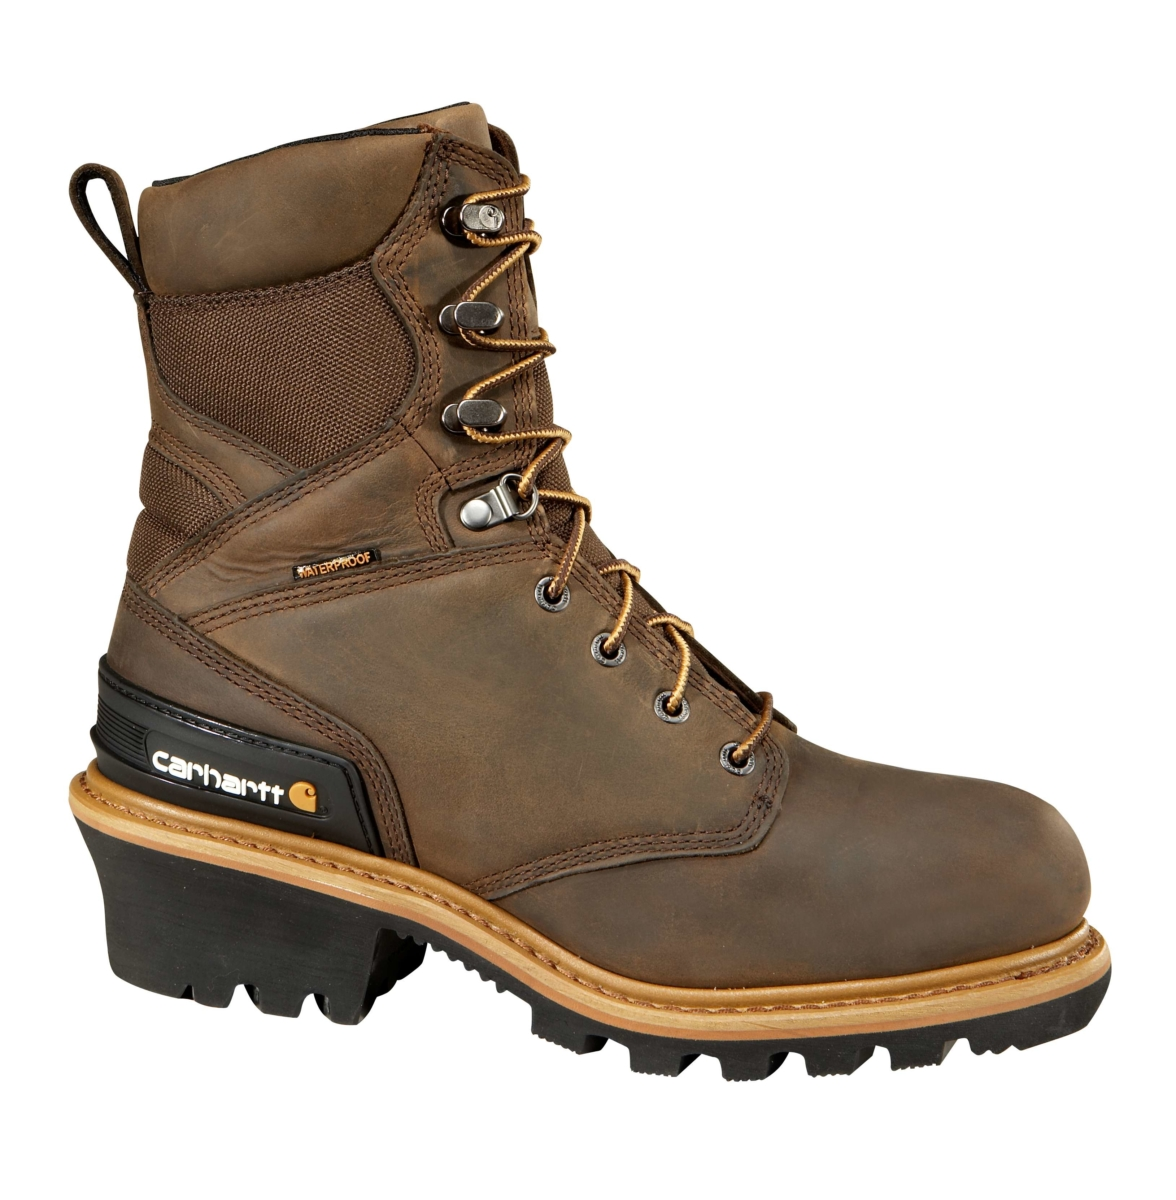 Carhartt 8 INCH INSULATED COMPOSITE TOE CLIMBING BOOT Crazy Horse Brown Oil Tanned USA - GOOFASH - Mens BOOTS